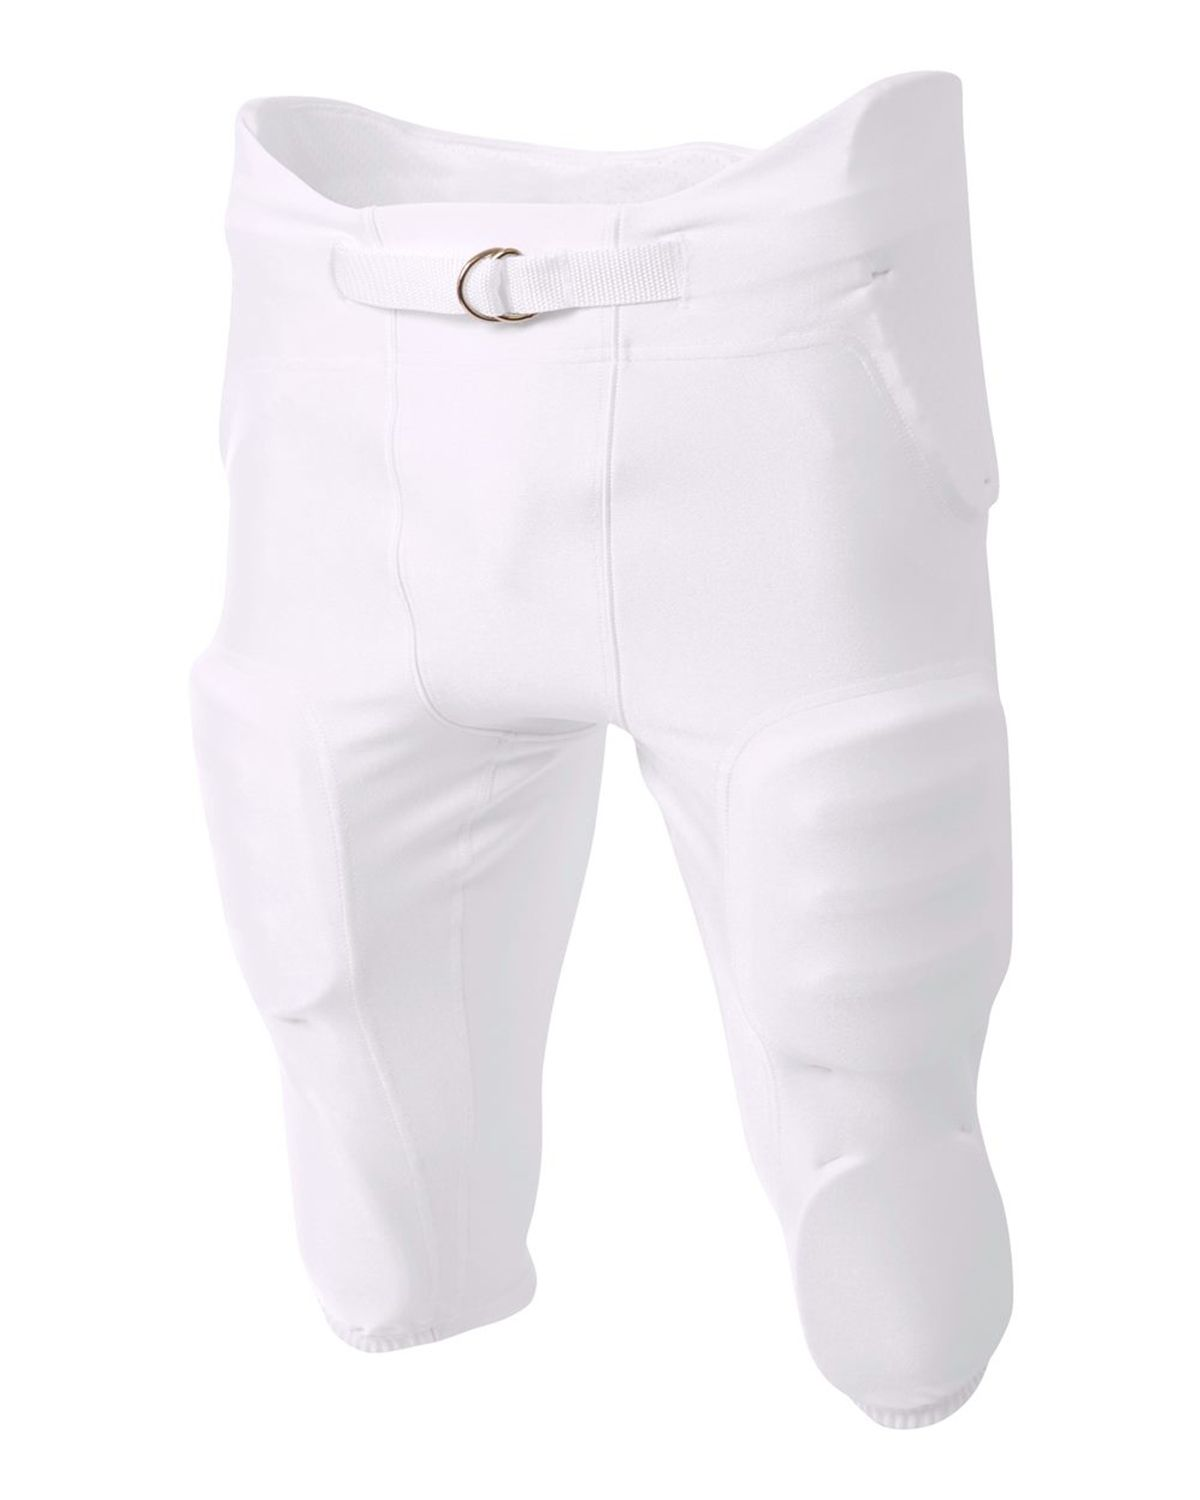 A4 NB6198 Boy's Integrated Zone Football Pant